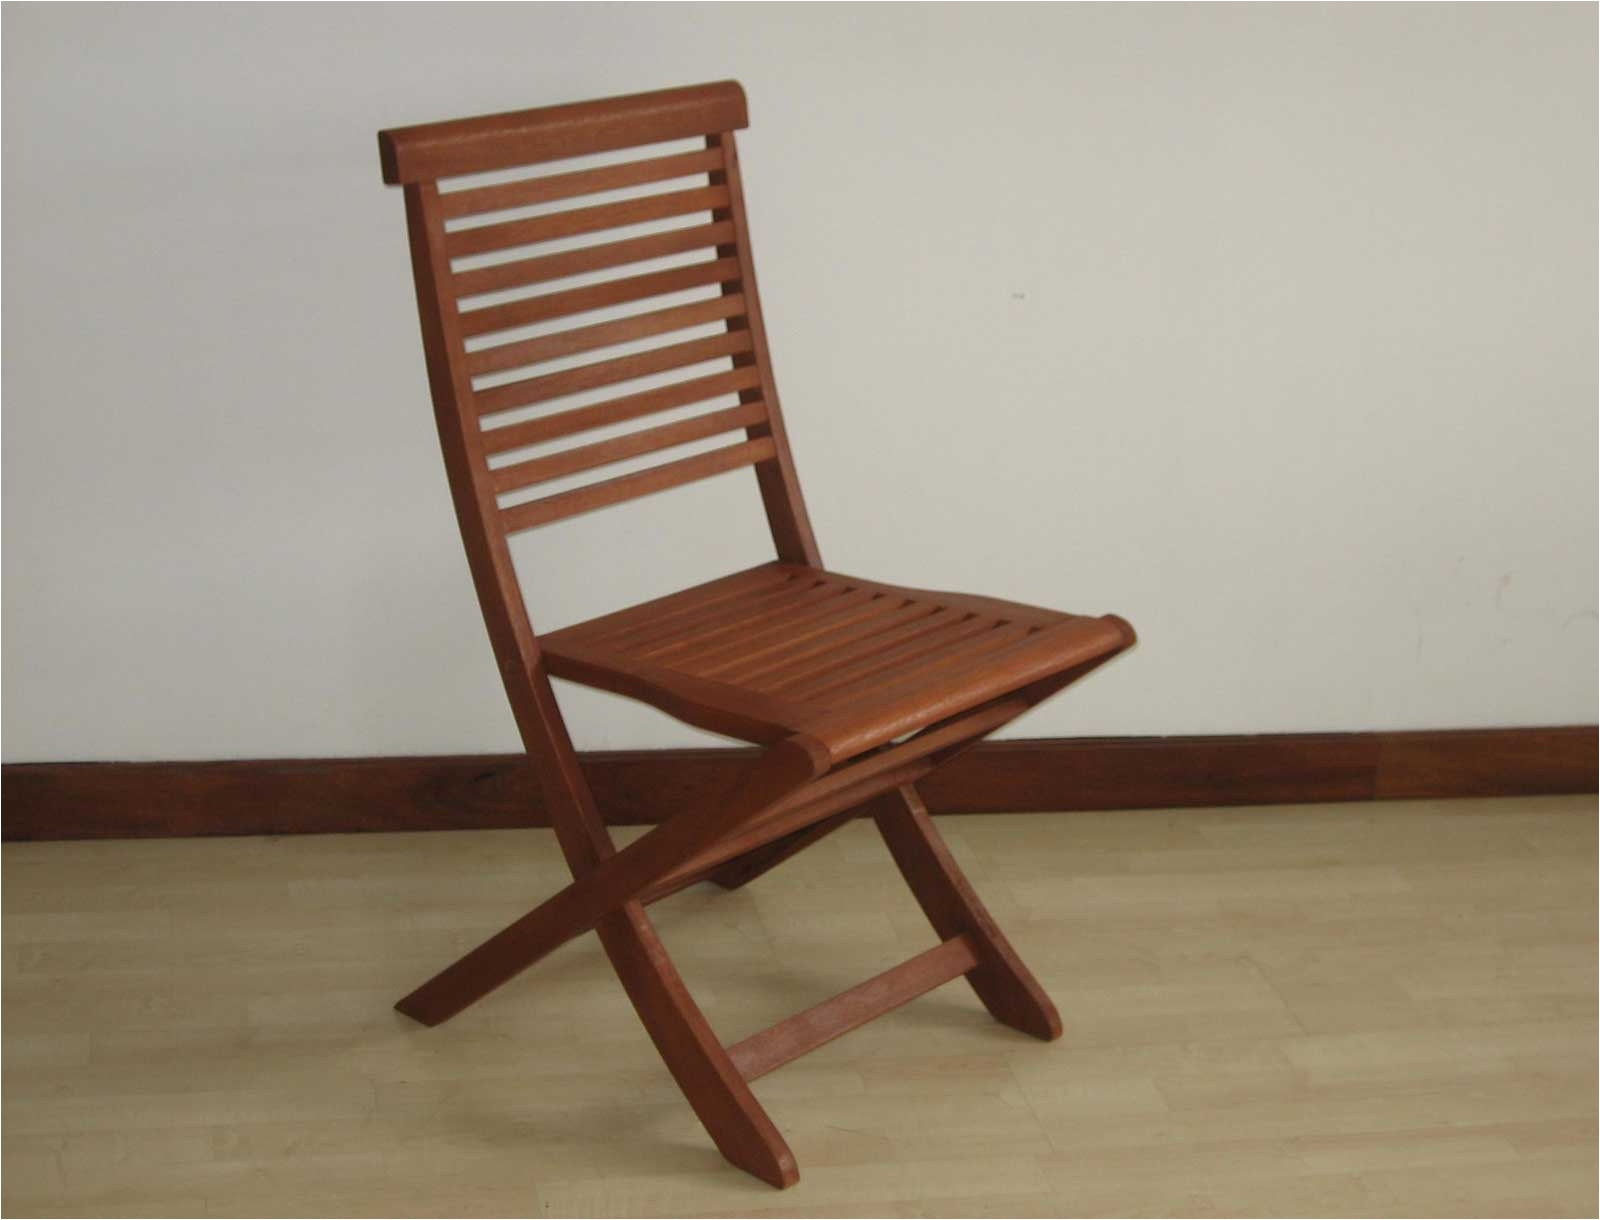 Cloth Folding Chairs Costco Chair Wooden Wood Frame Chair Costco Padded Small Fold Up Fabric